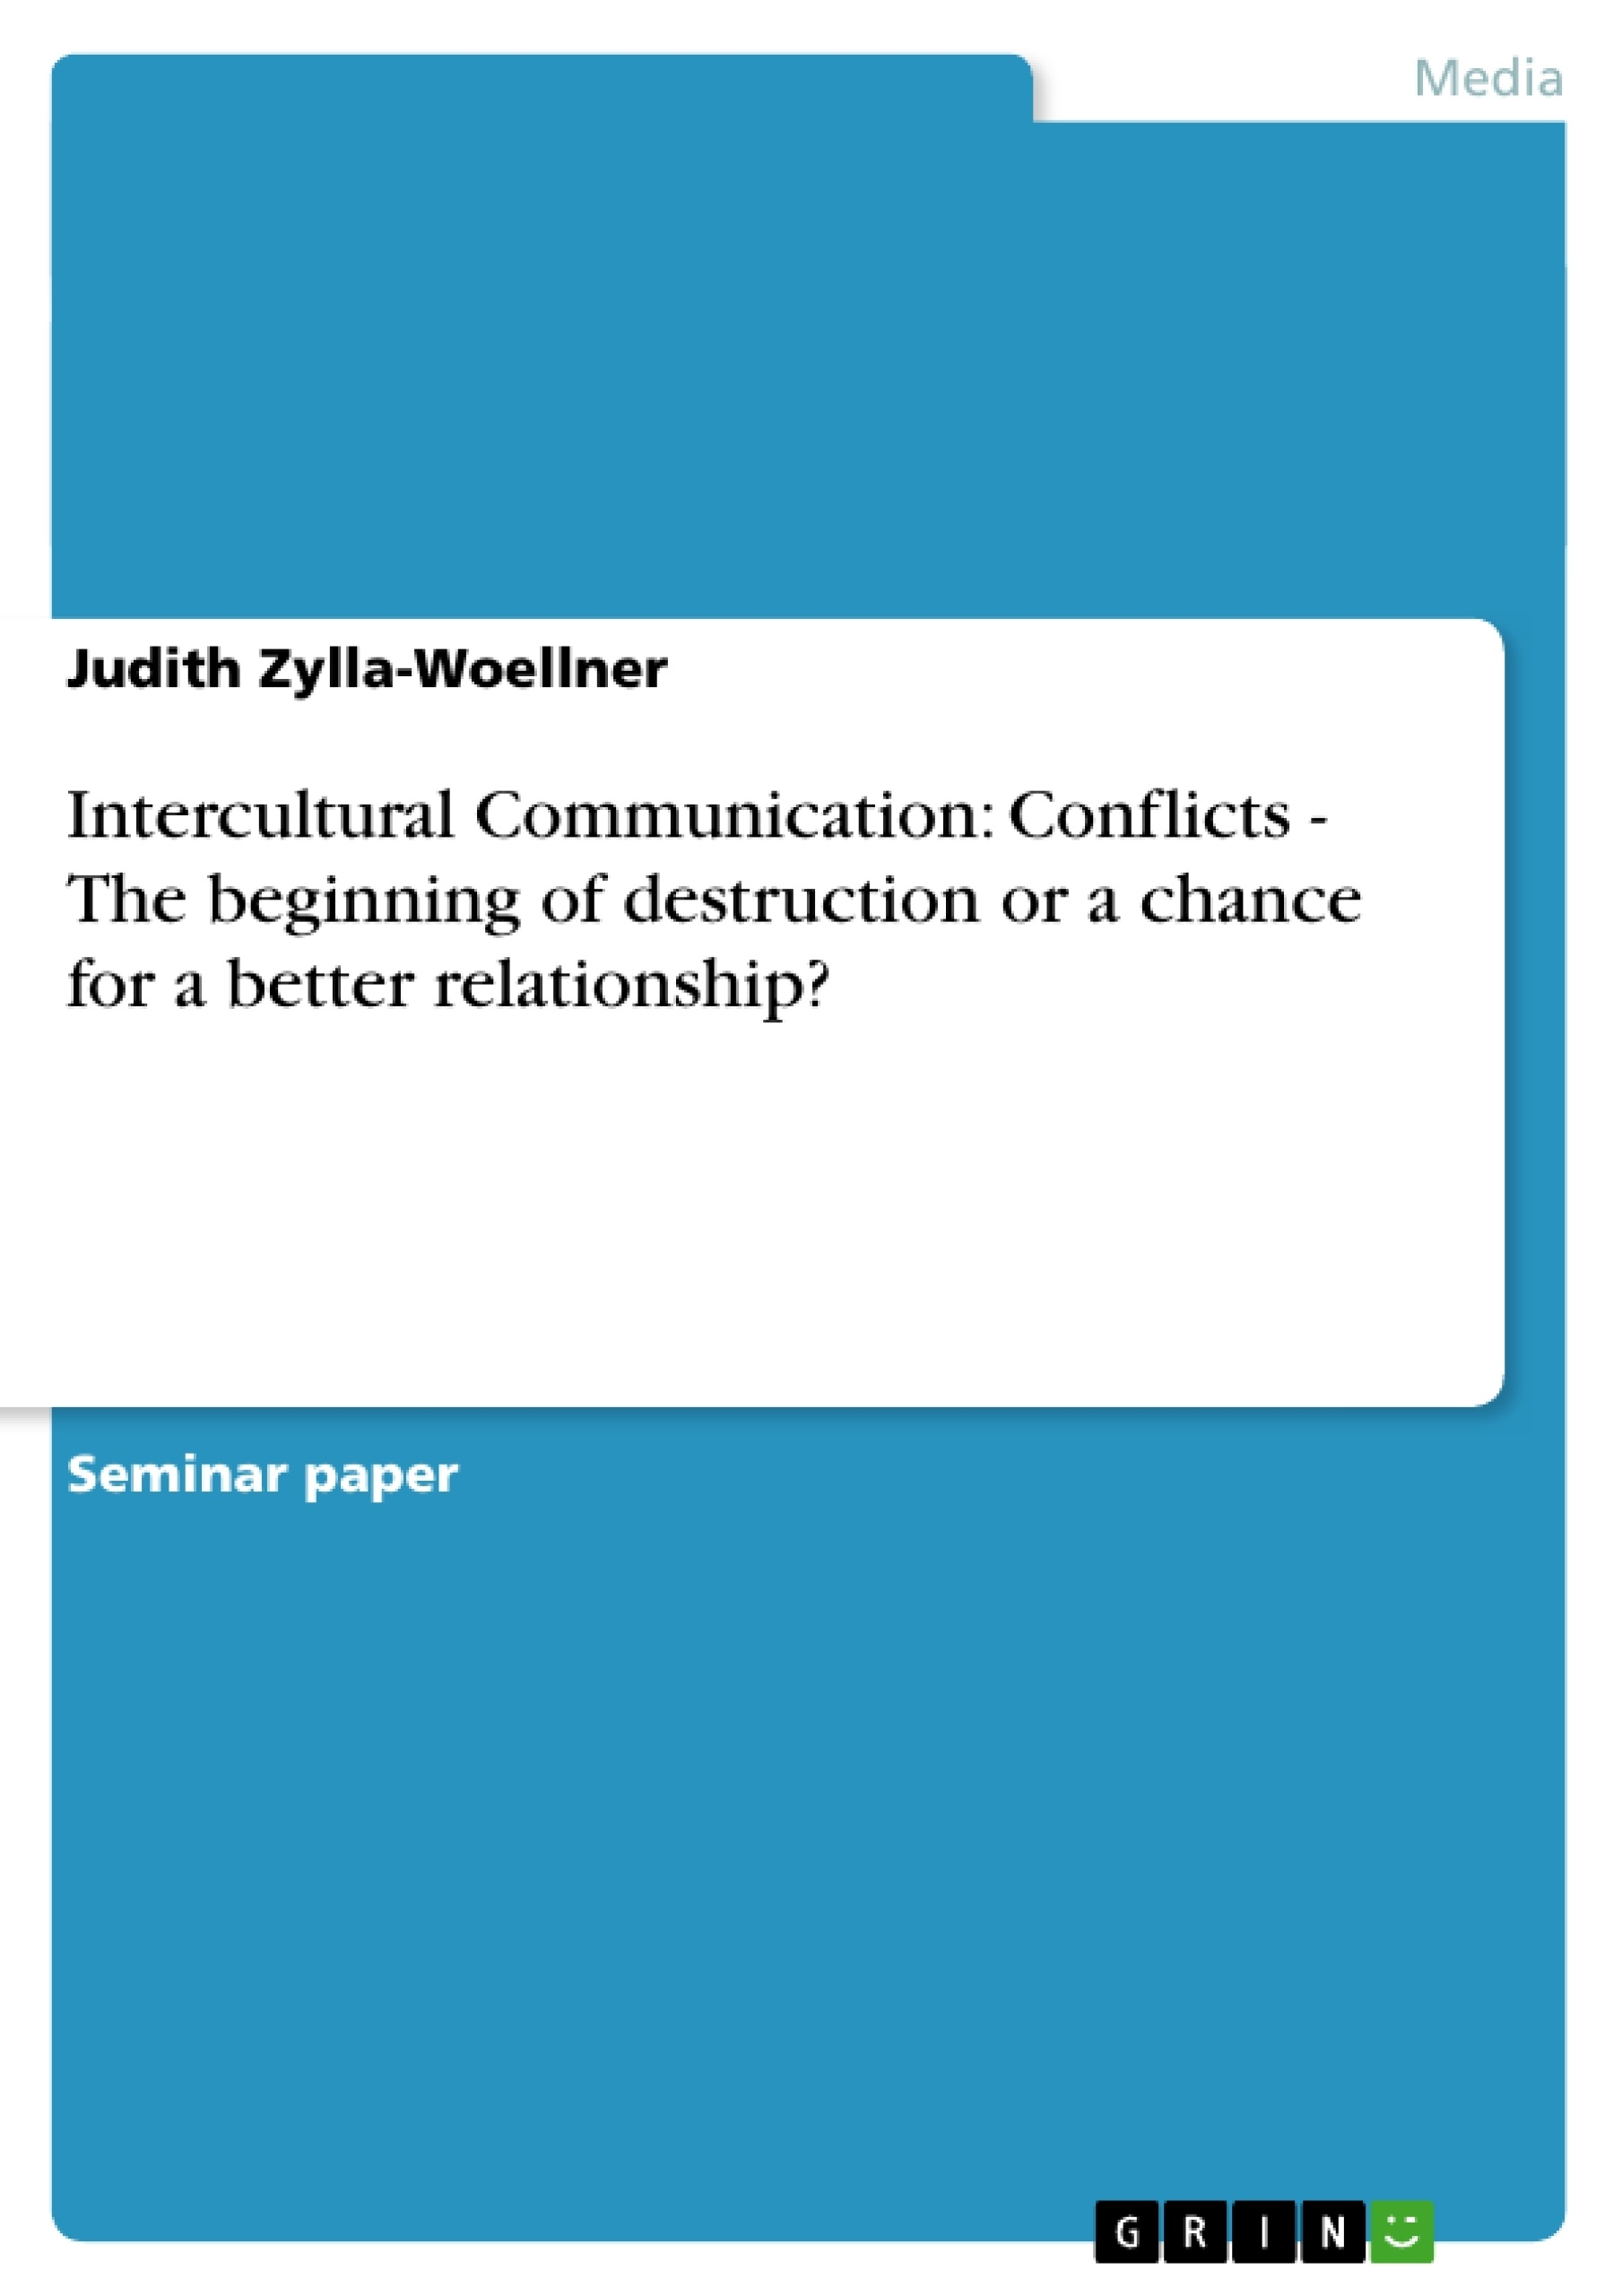 Title: Intercultural Communication: Conflicts - The beginning of destruction or a chance for a better relationship?